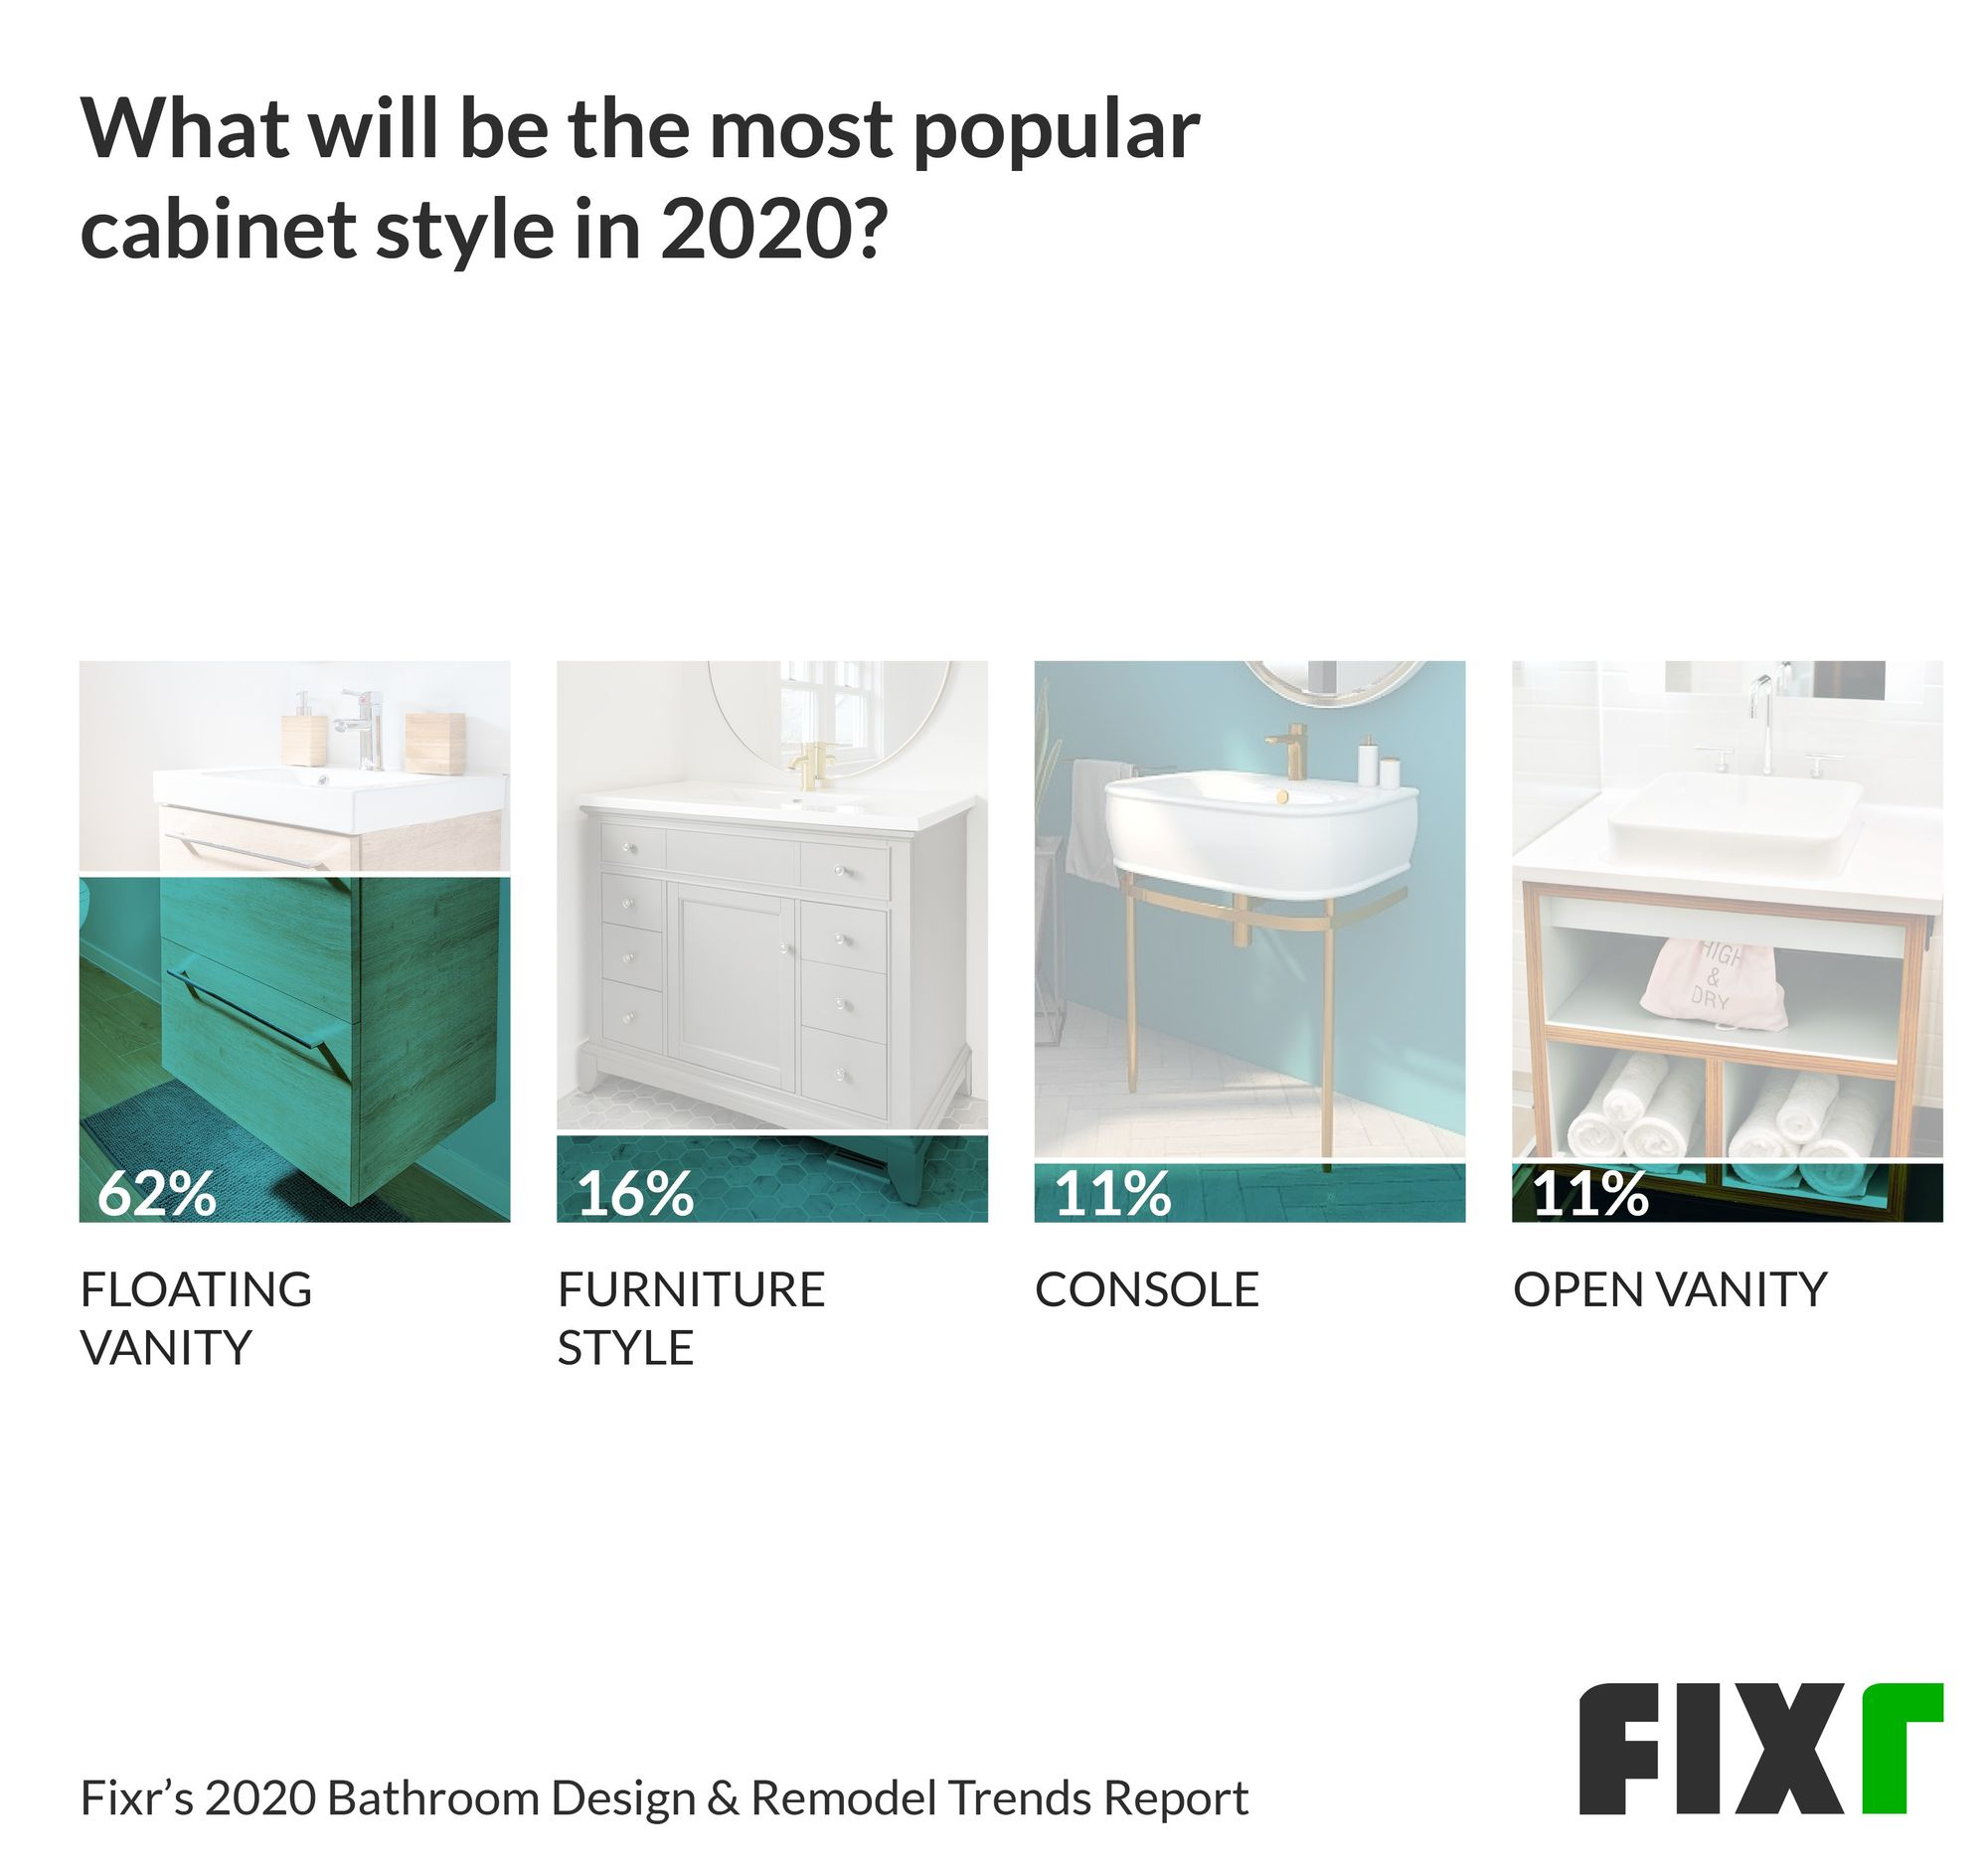 Bathroom Vanity Trends in 2020